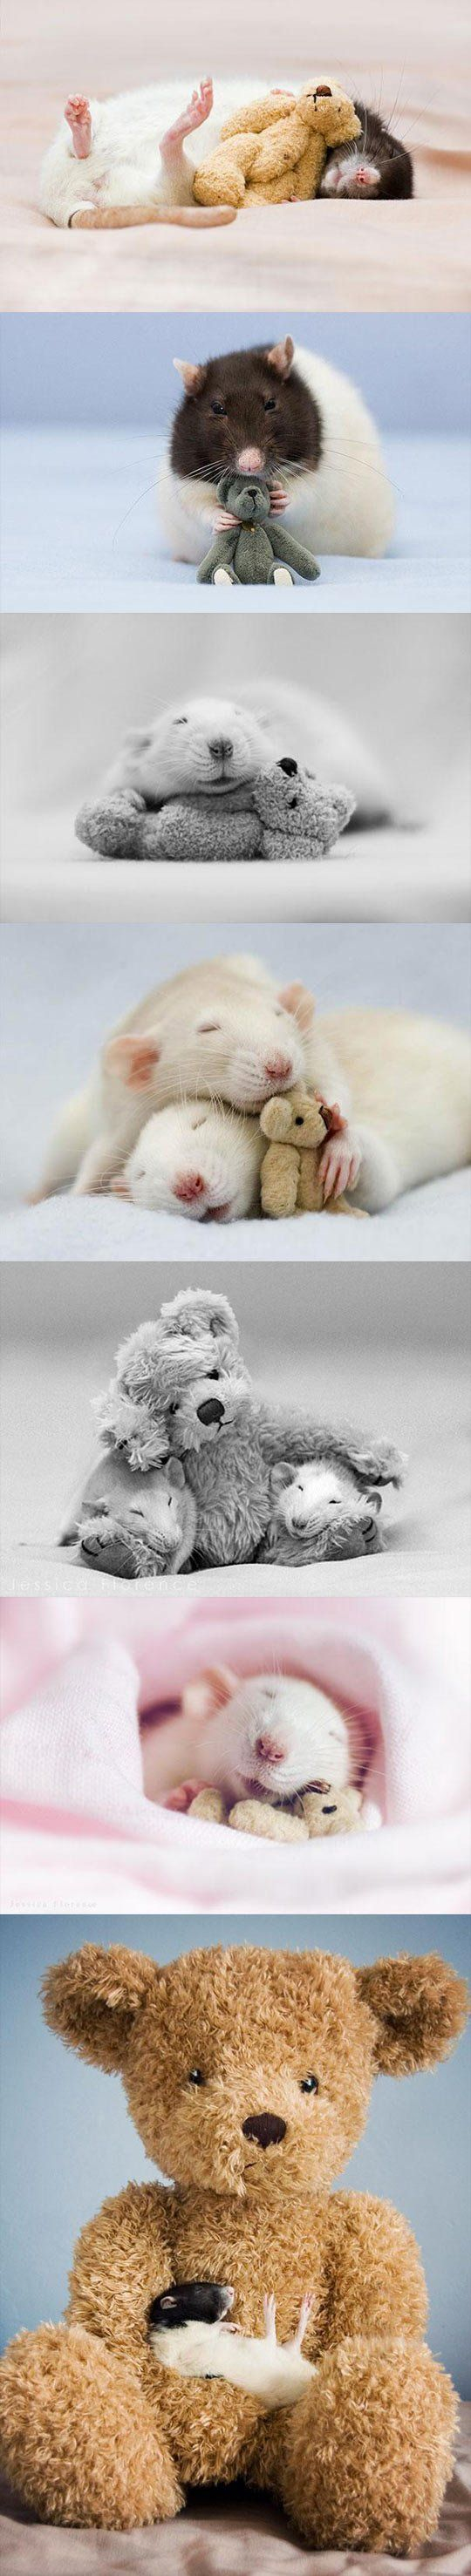 Rats with teddy bears… (3 of 3)